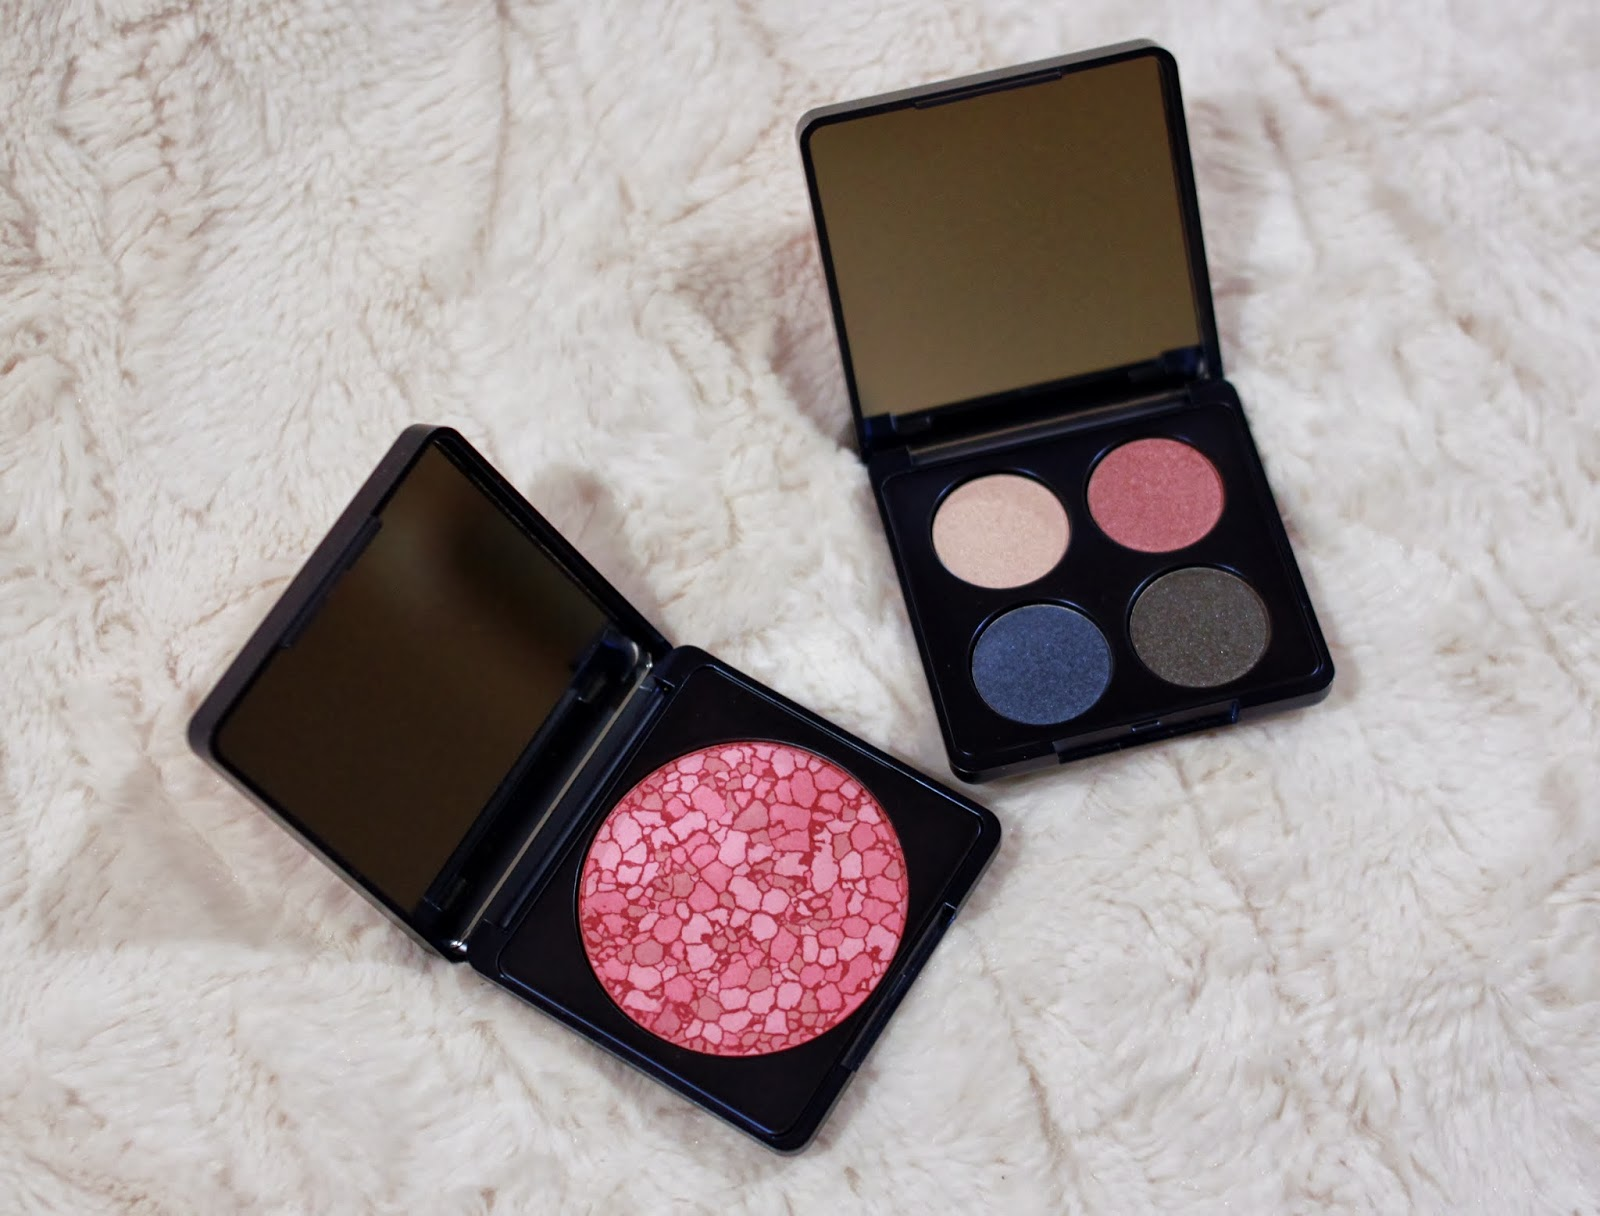 Lise Watier Spring 2014 eyeshadow palette and blush. Photo: Just J